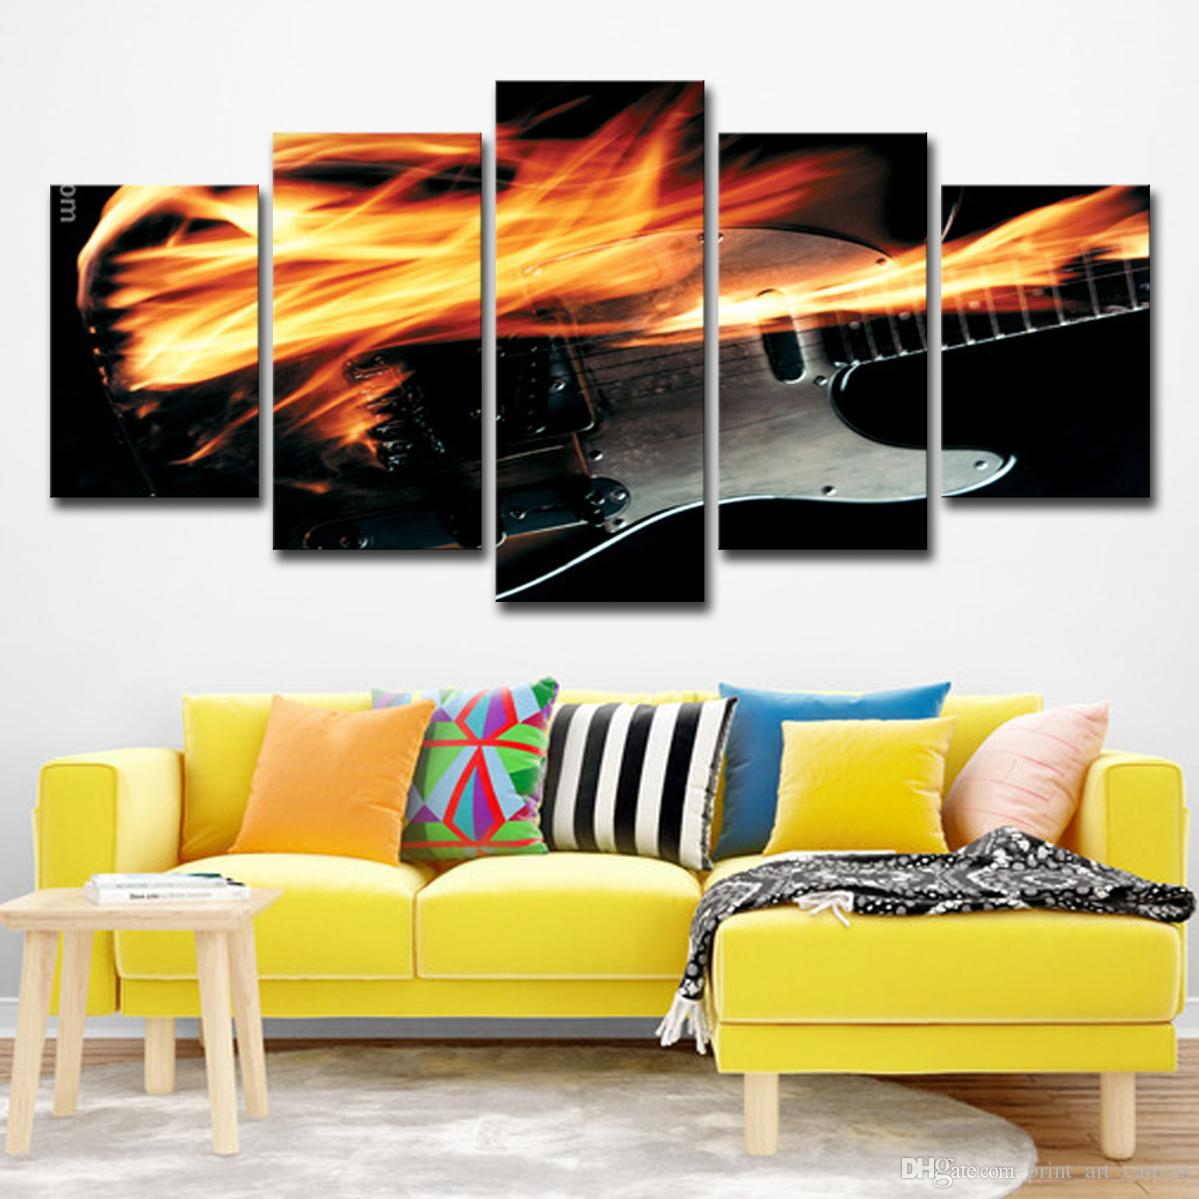 2019 Mordern Canvas Painting Wall Art Pictures Home Decor Electric